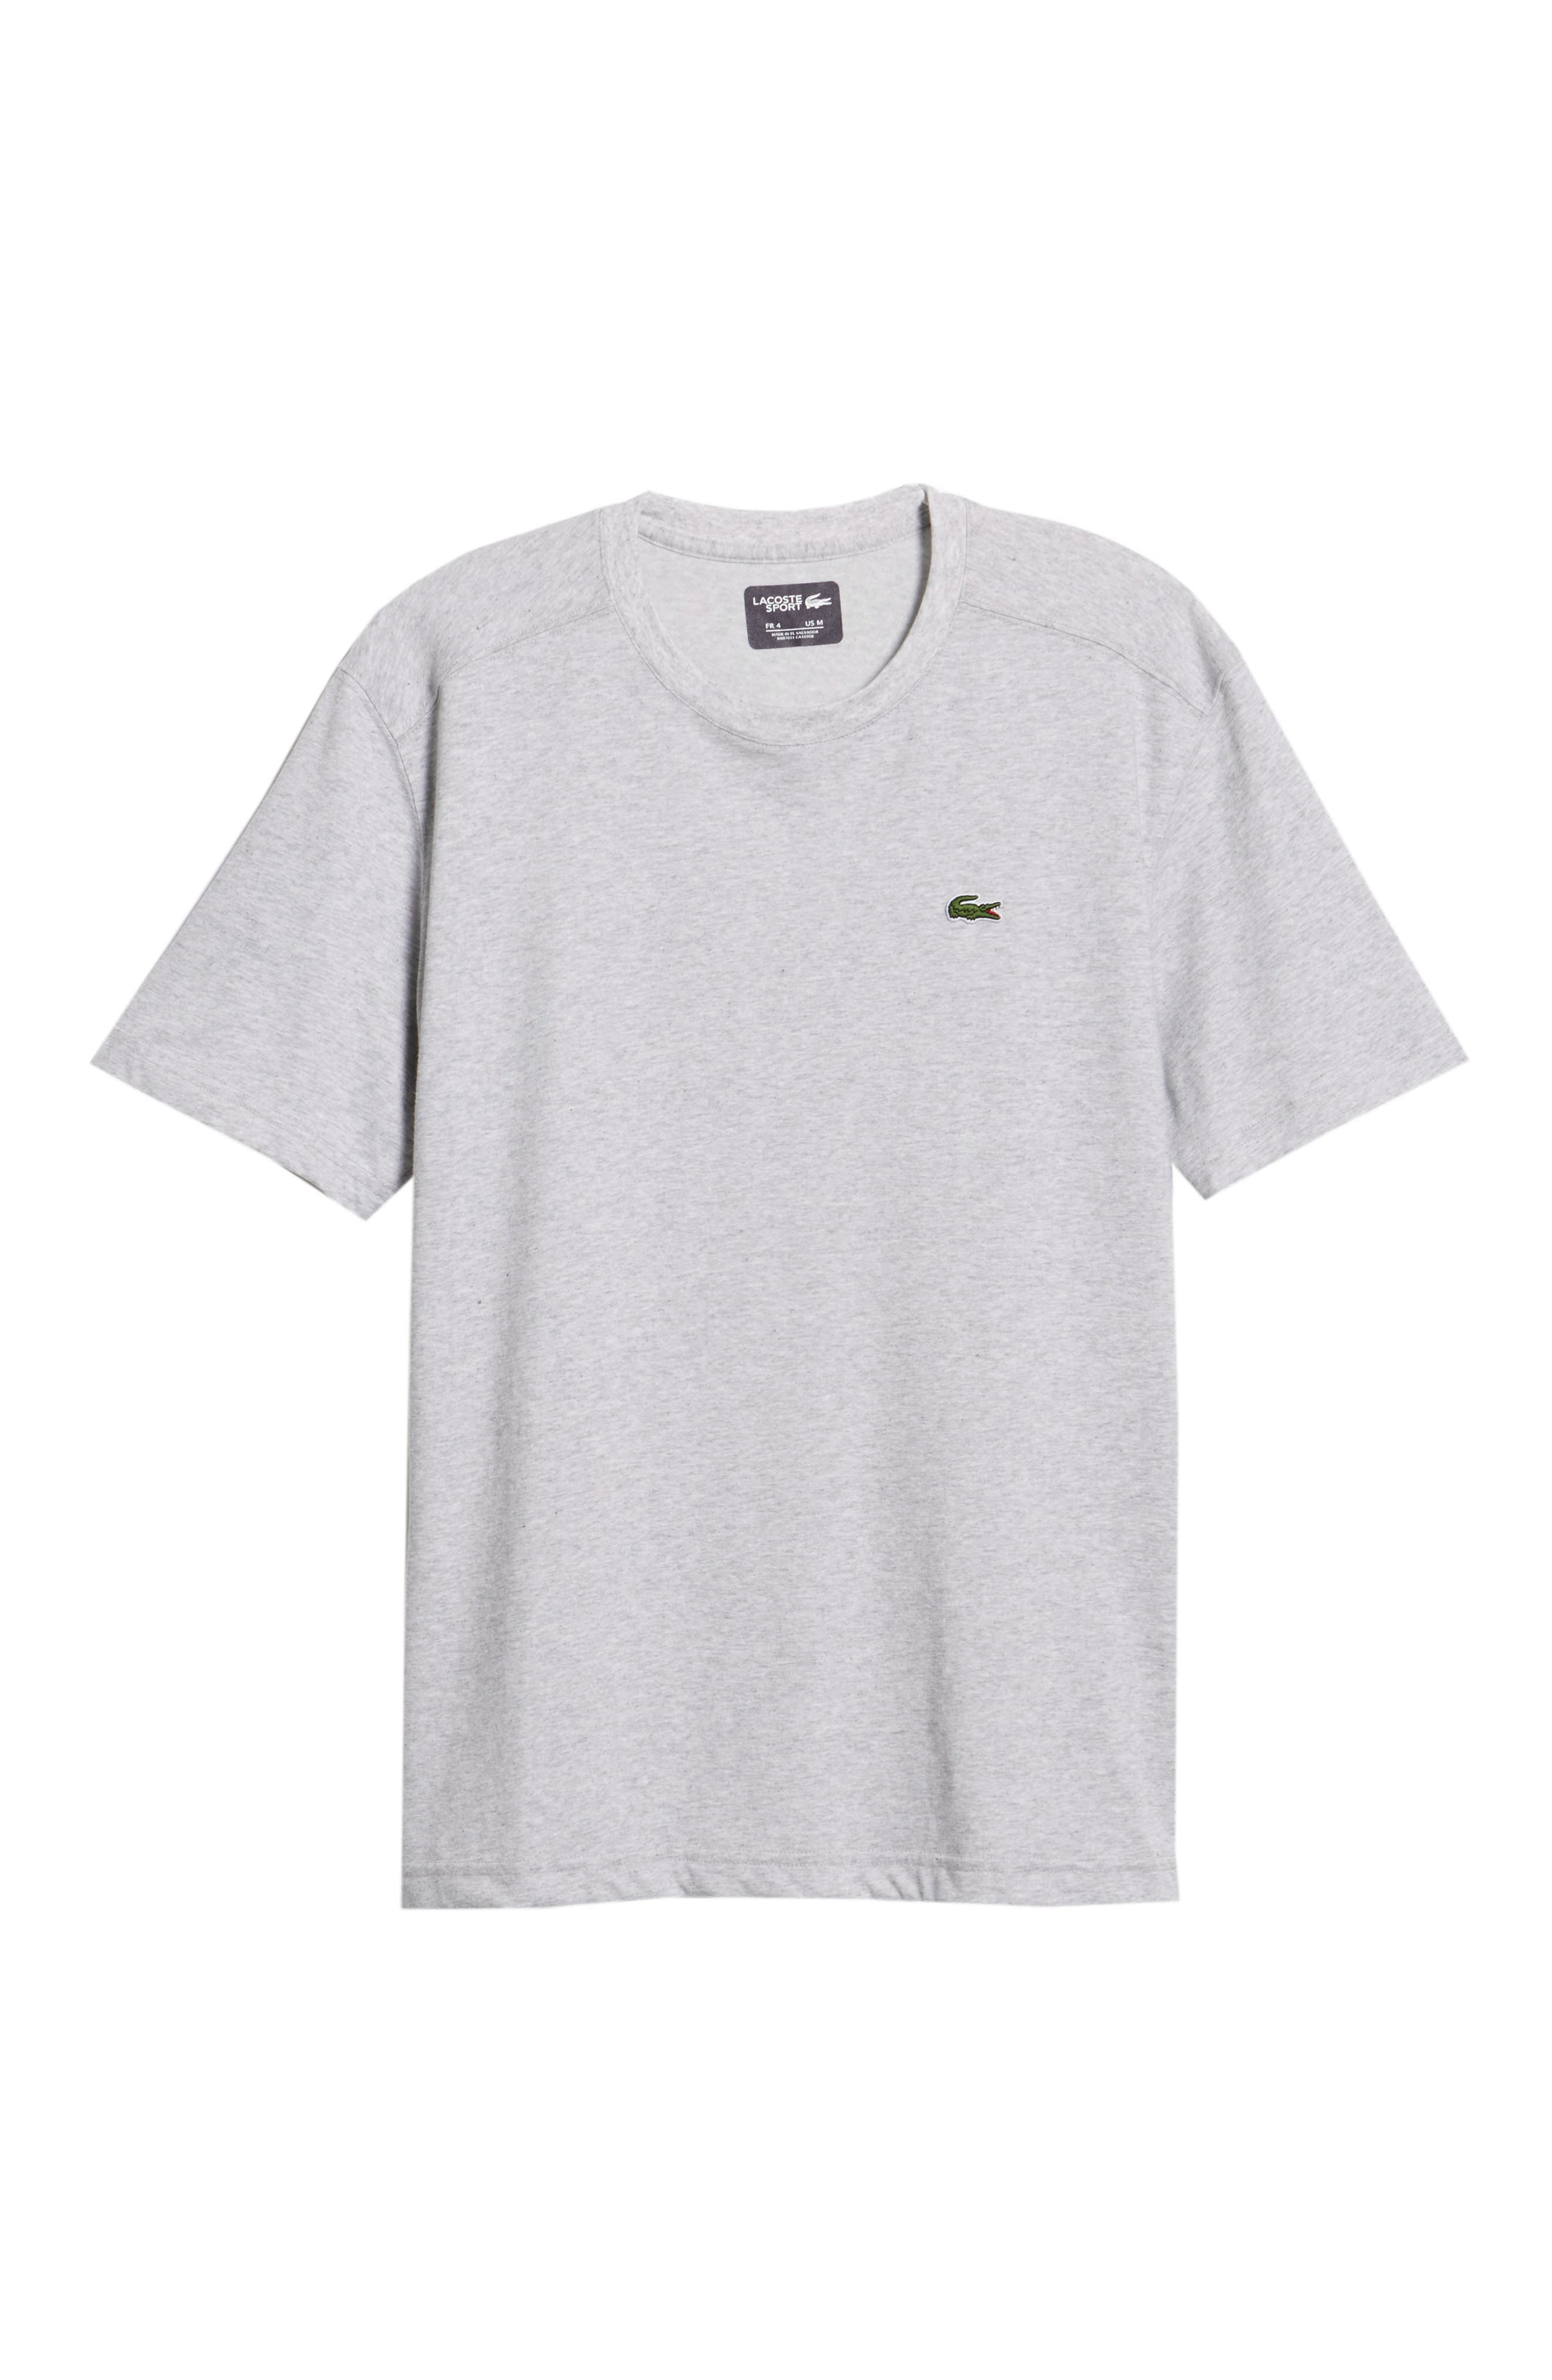 'Sport' Cotton Jersey T-Shirt,                             Alternate thumbnail 6, color,                             SILVER CHINE